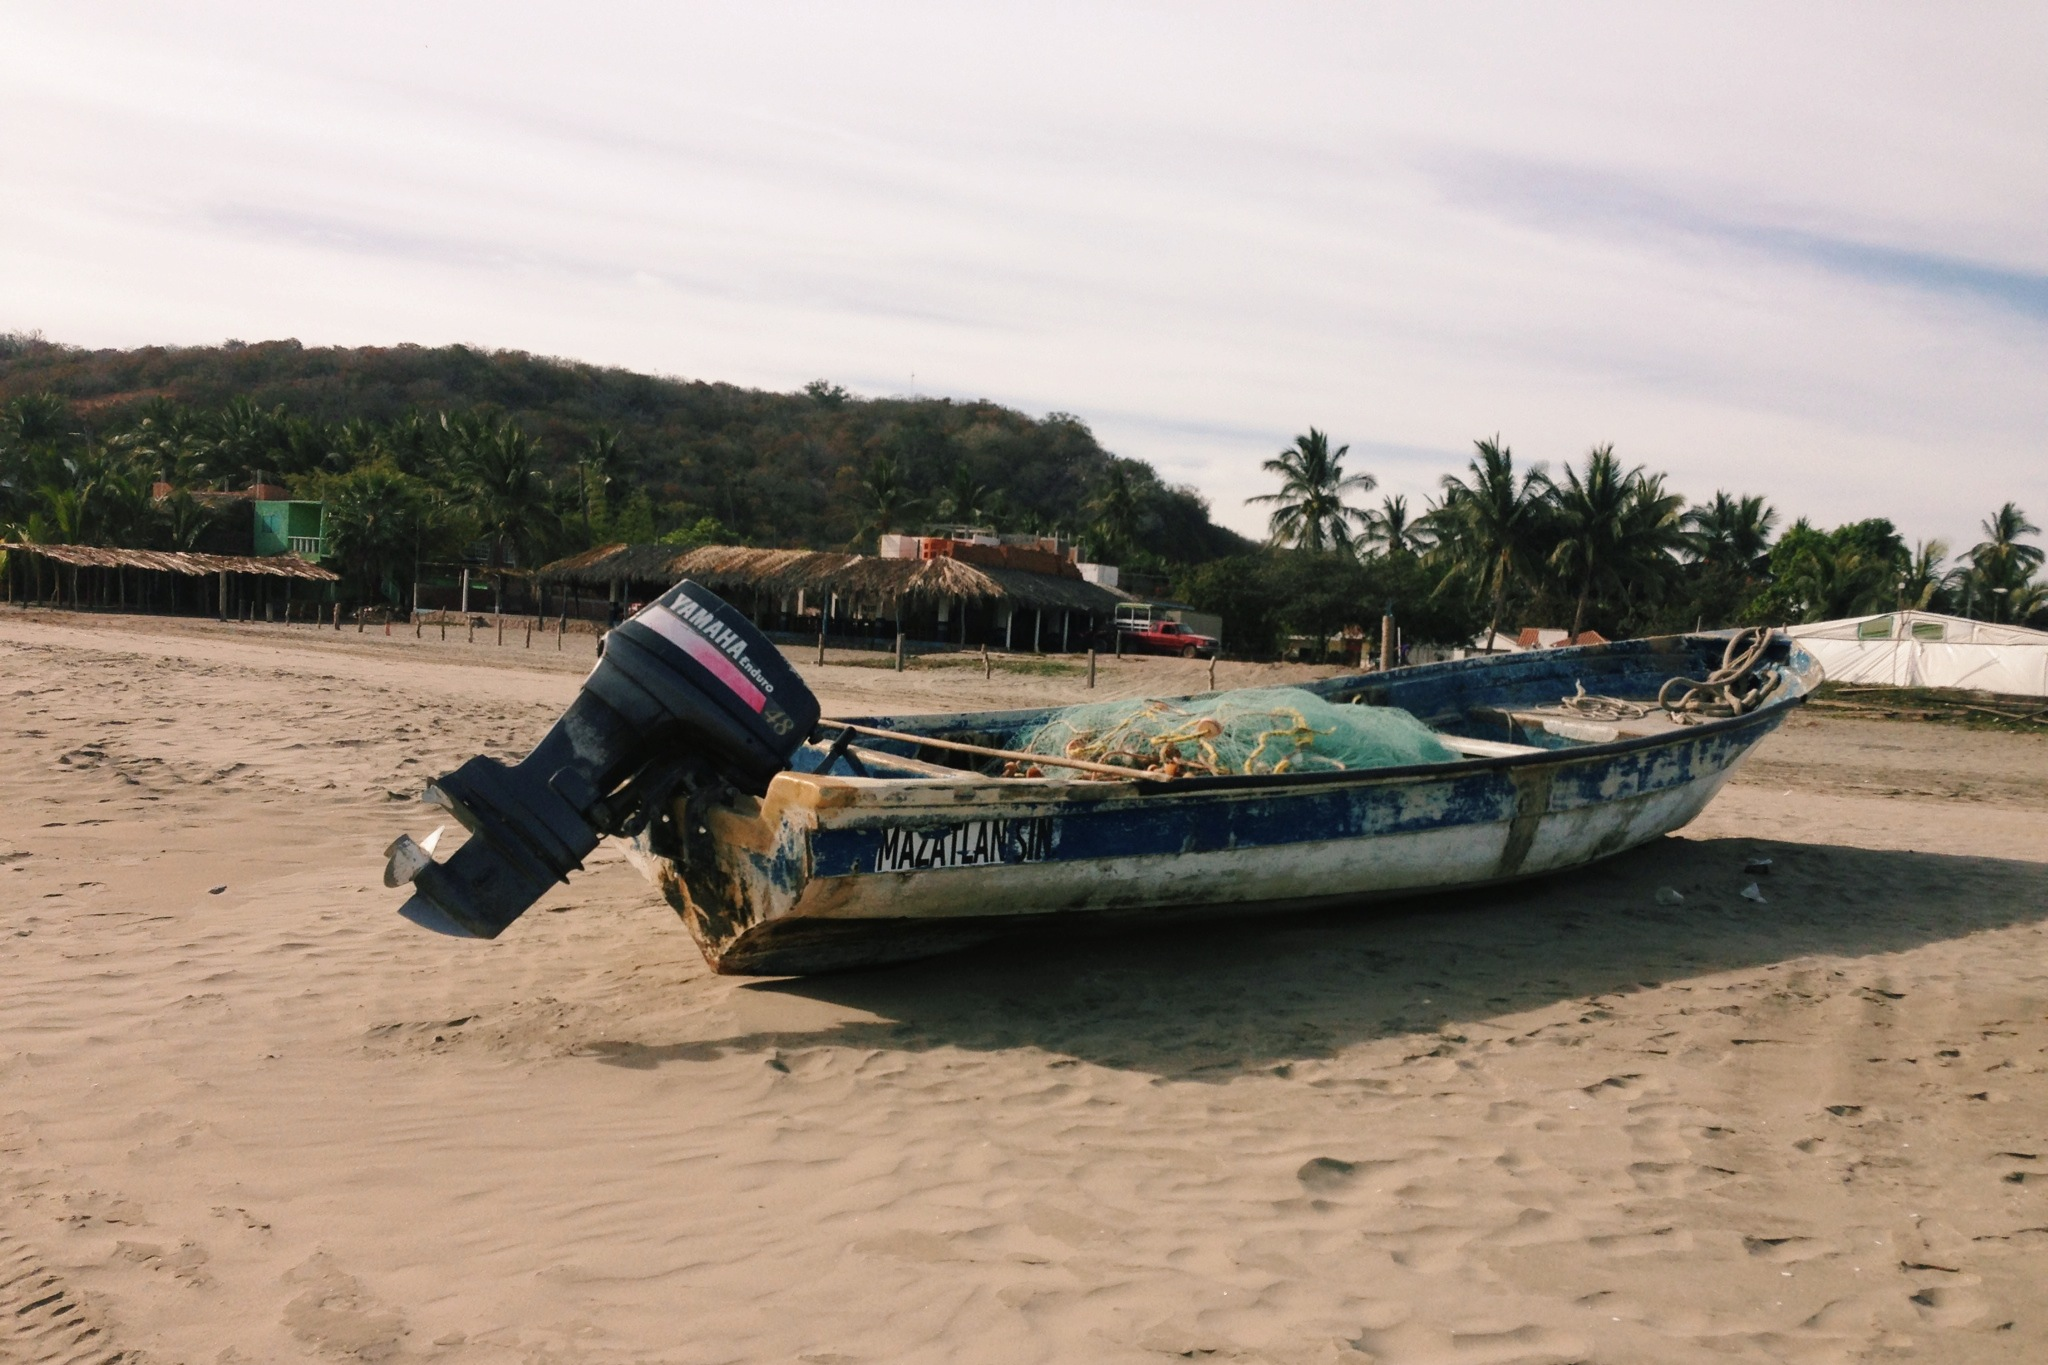 Typical fishing boat on the beach